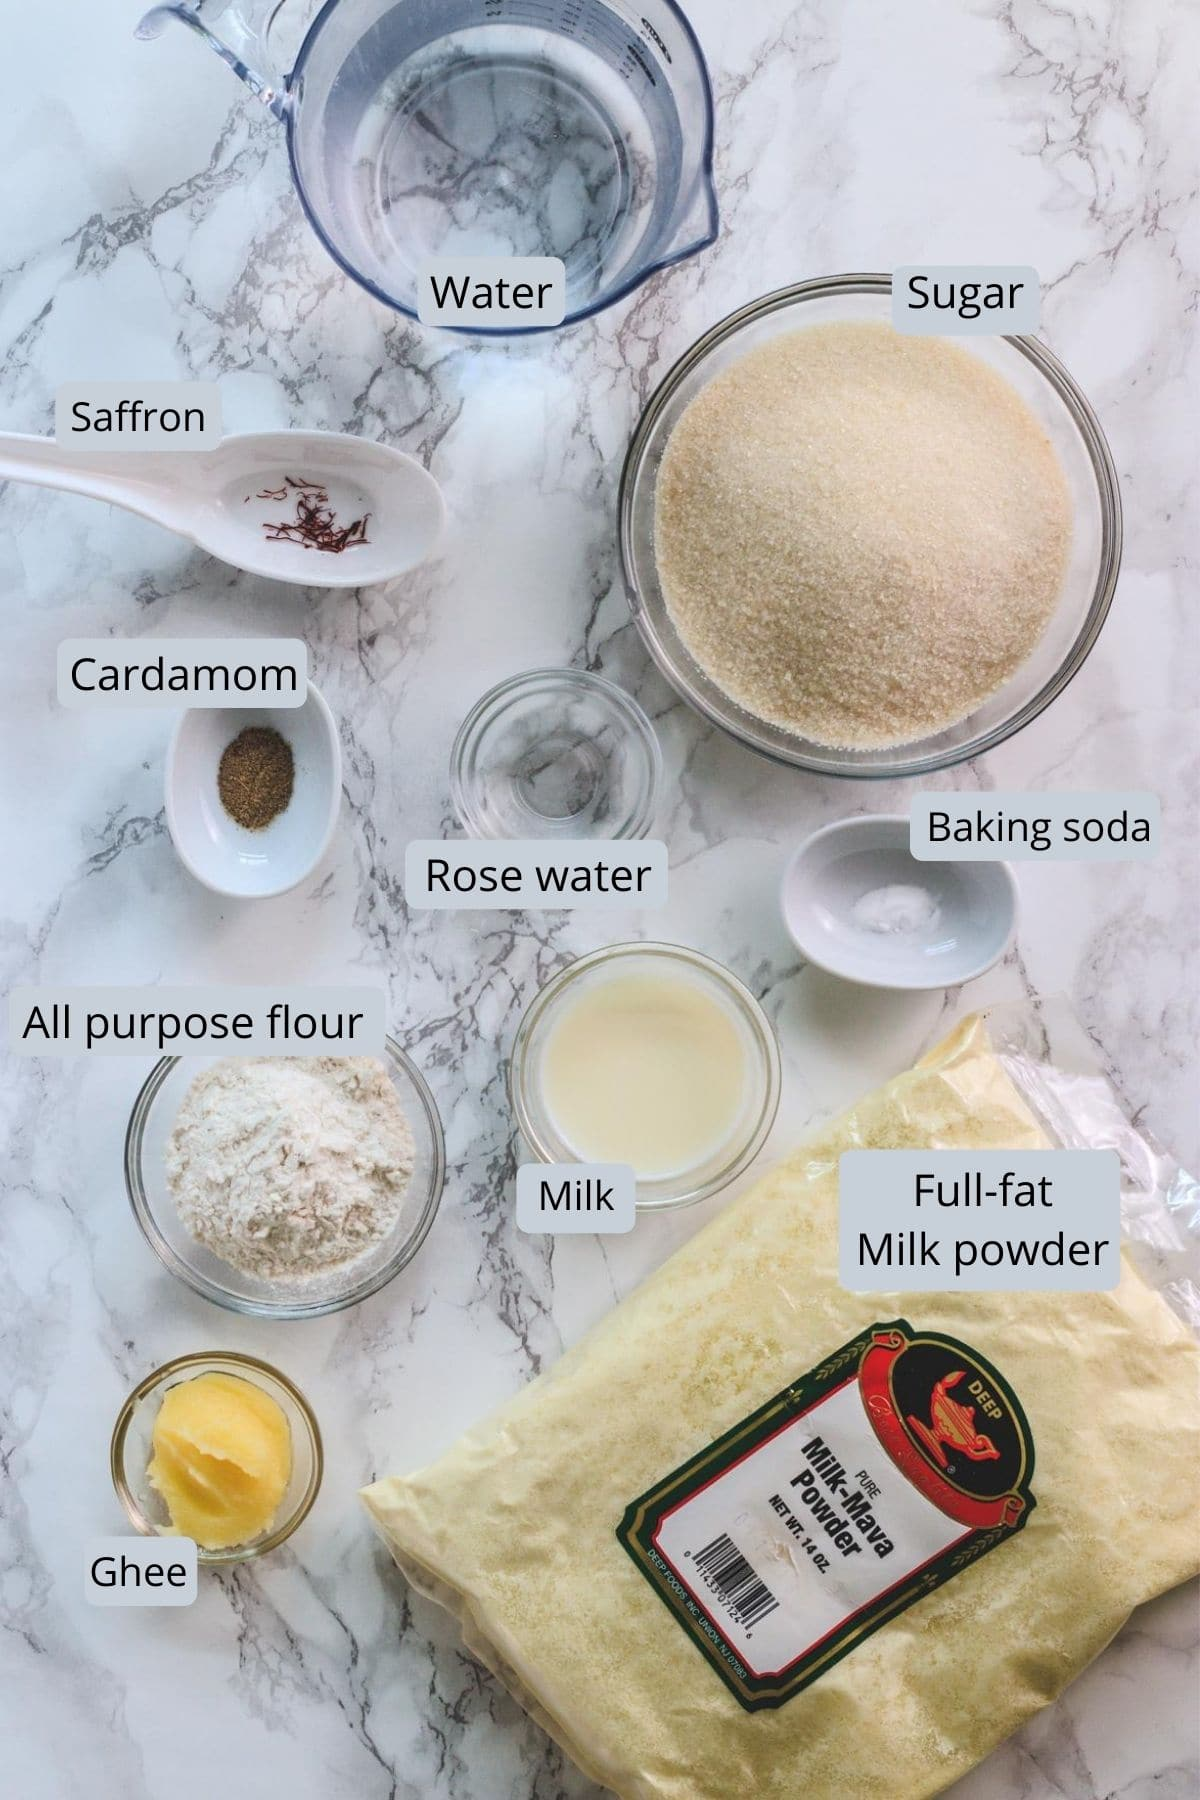 ingredients used in gulab jamun inclues milk powder, ghee, flour, baking soda, cardamom, saffron, sugar, water, rose water.